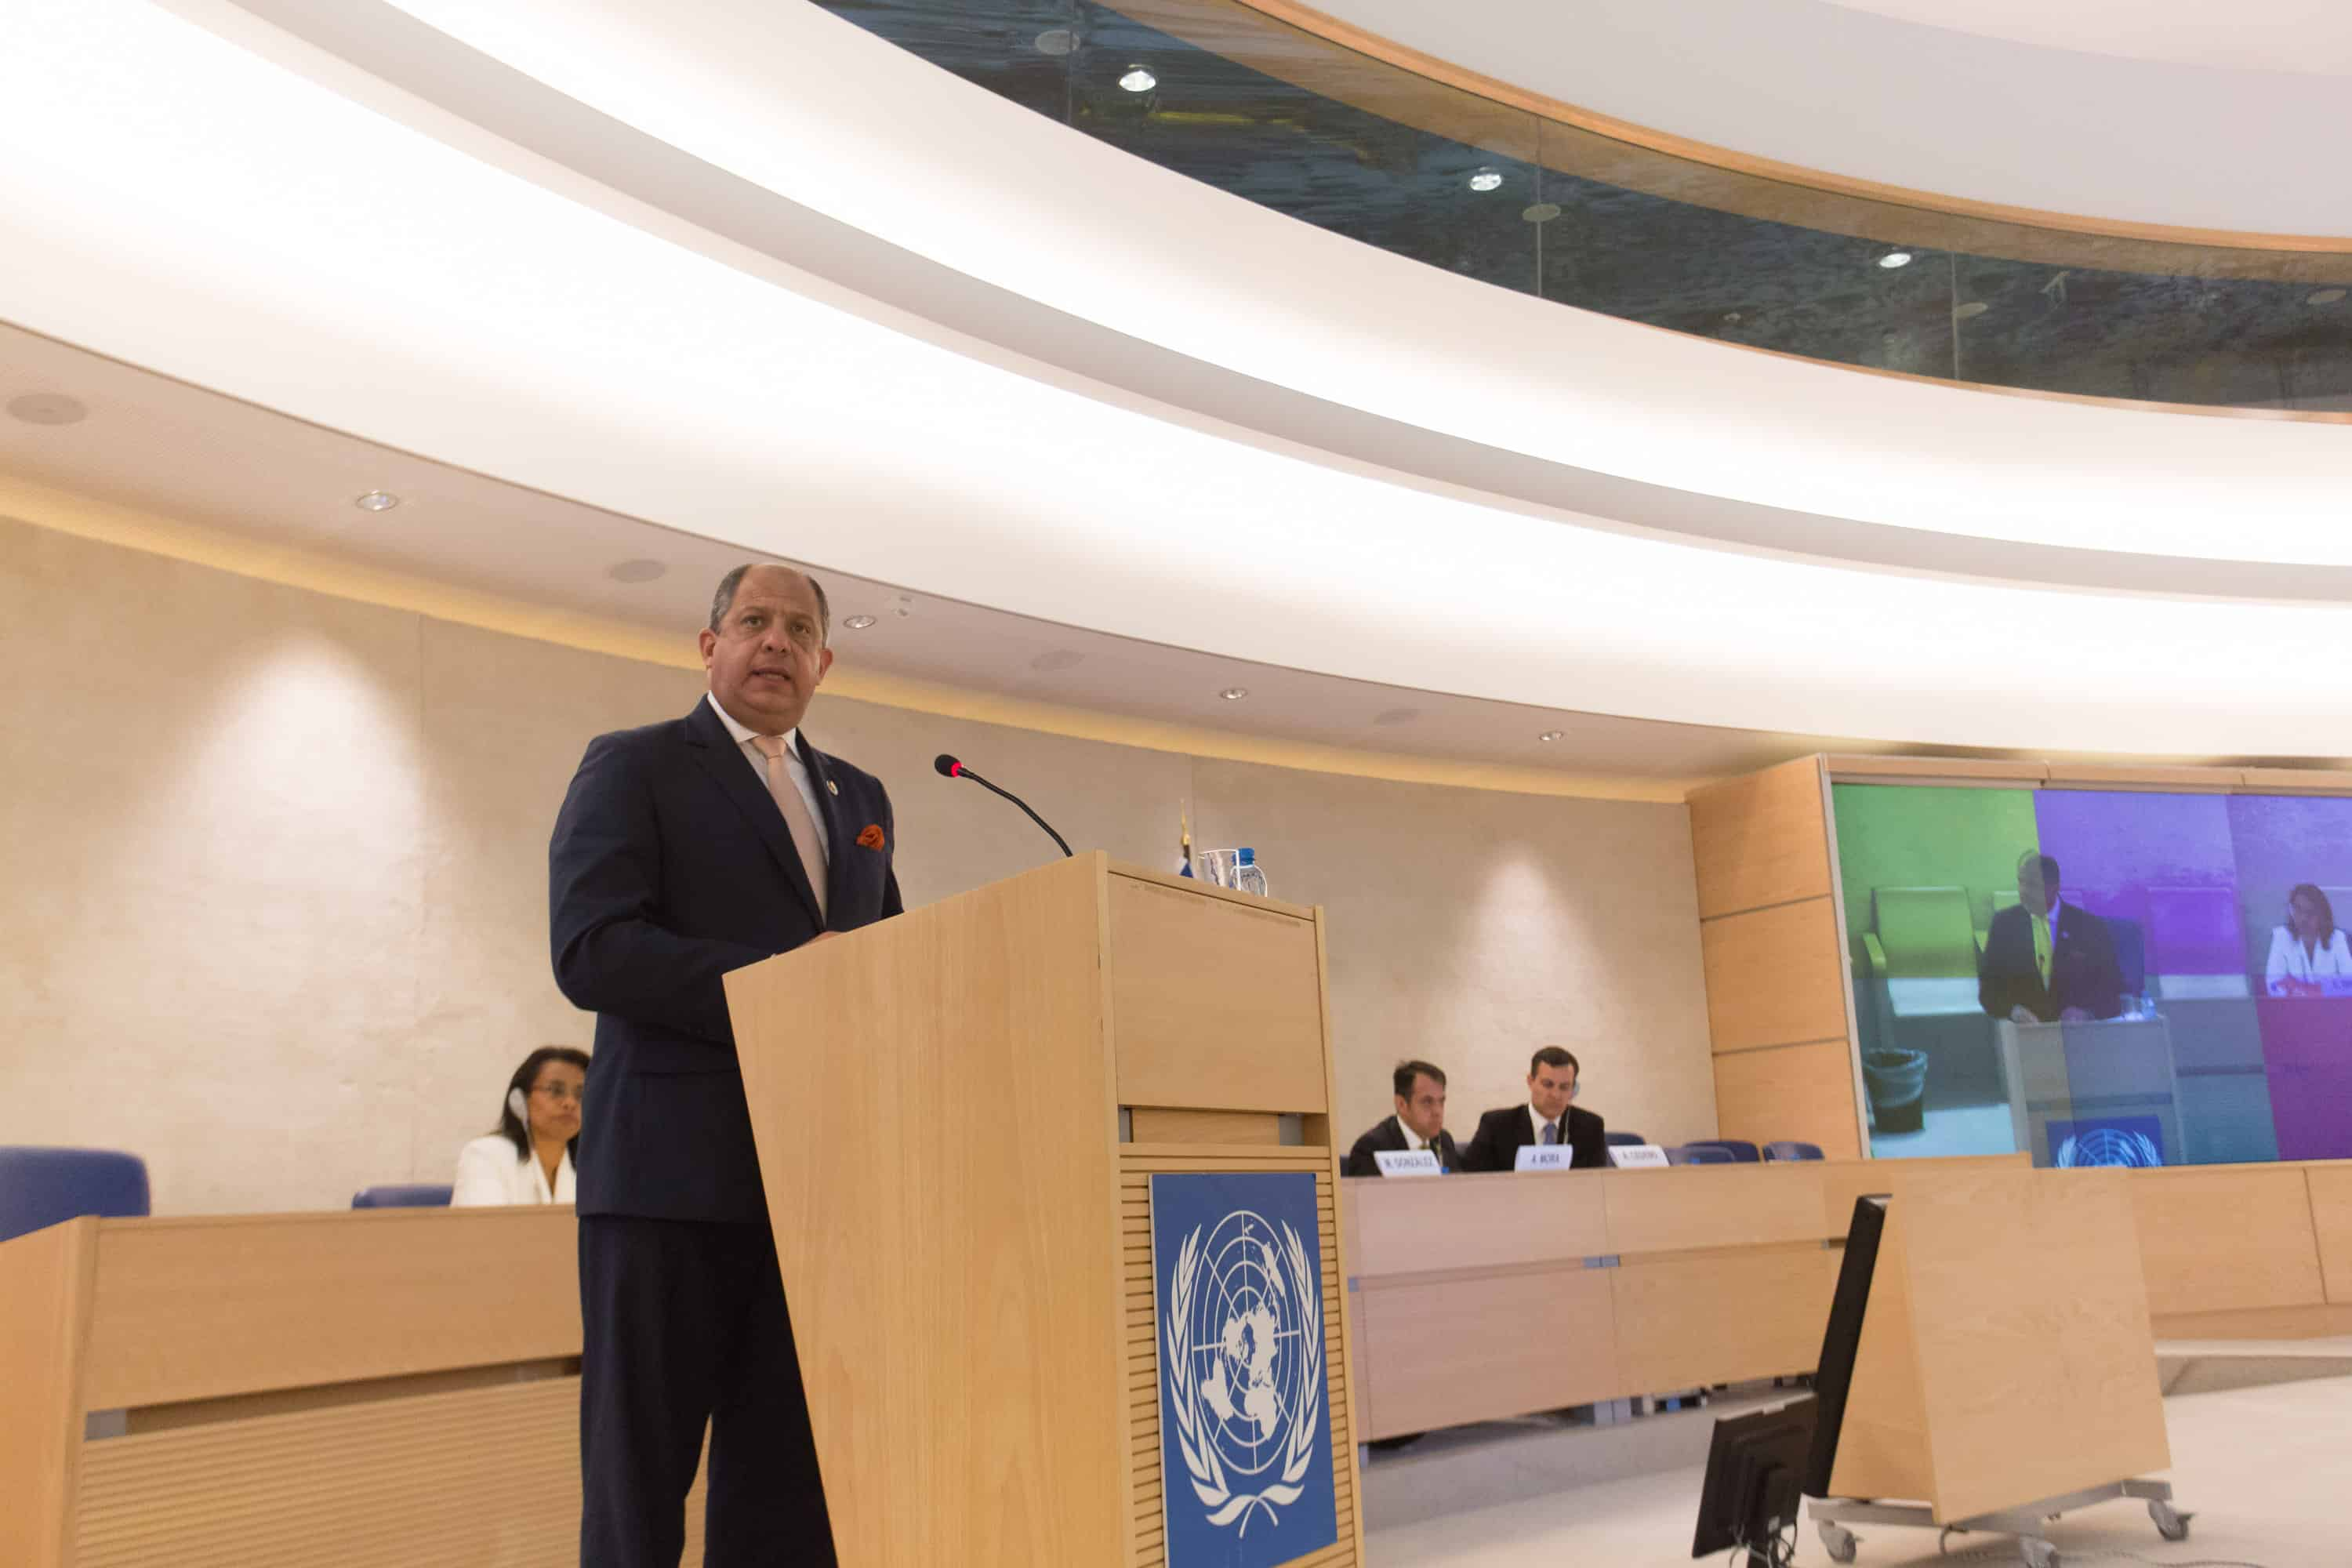 Costa Rican President Luis Guillermo Solís addresses the United Nations in Geneva.